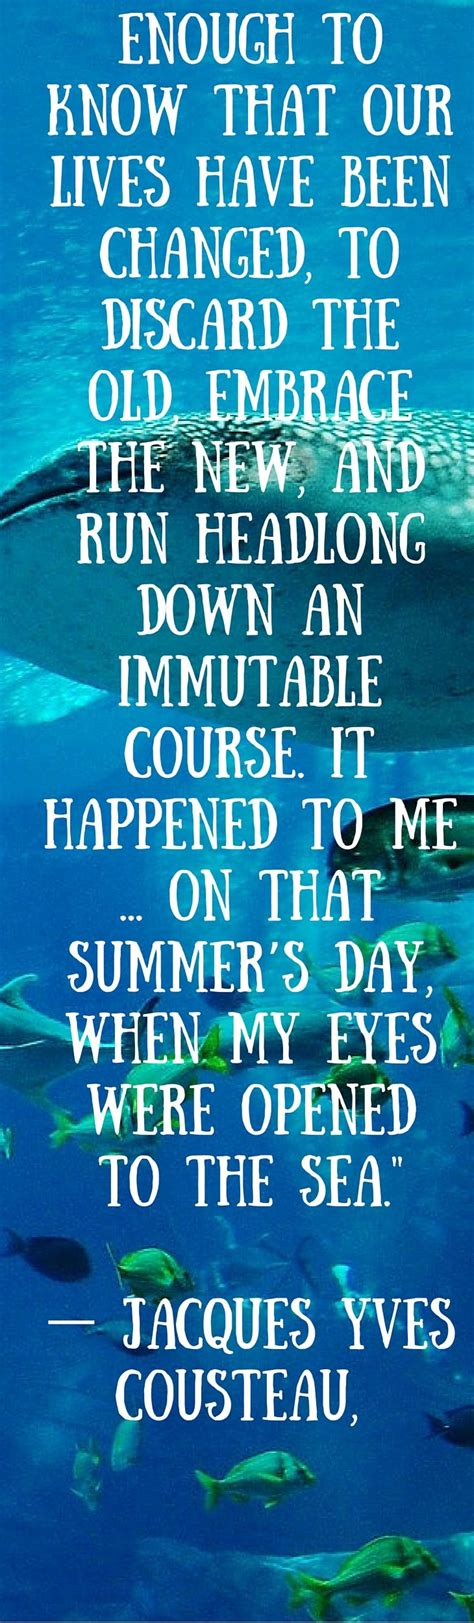 Best 25+ Diving Quotes Ideas On Pinterest  Scuba Diving. Book Quotes Gone Girl. Heartbreak Quotes And Sayings From Songs. Relationship Validation Quotes. Happy Quotes Images. Happy Quotes Vacation. Disney Evil Queen Quotes. Heartbreak Quotes By Eminem. Fashion Quotes On Black